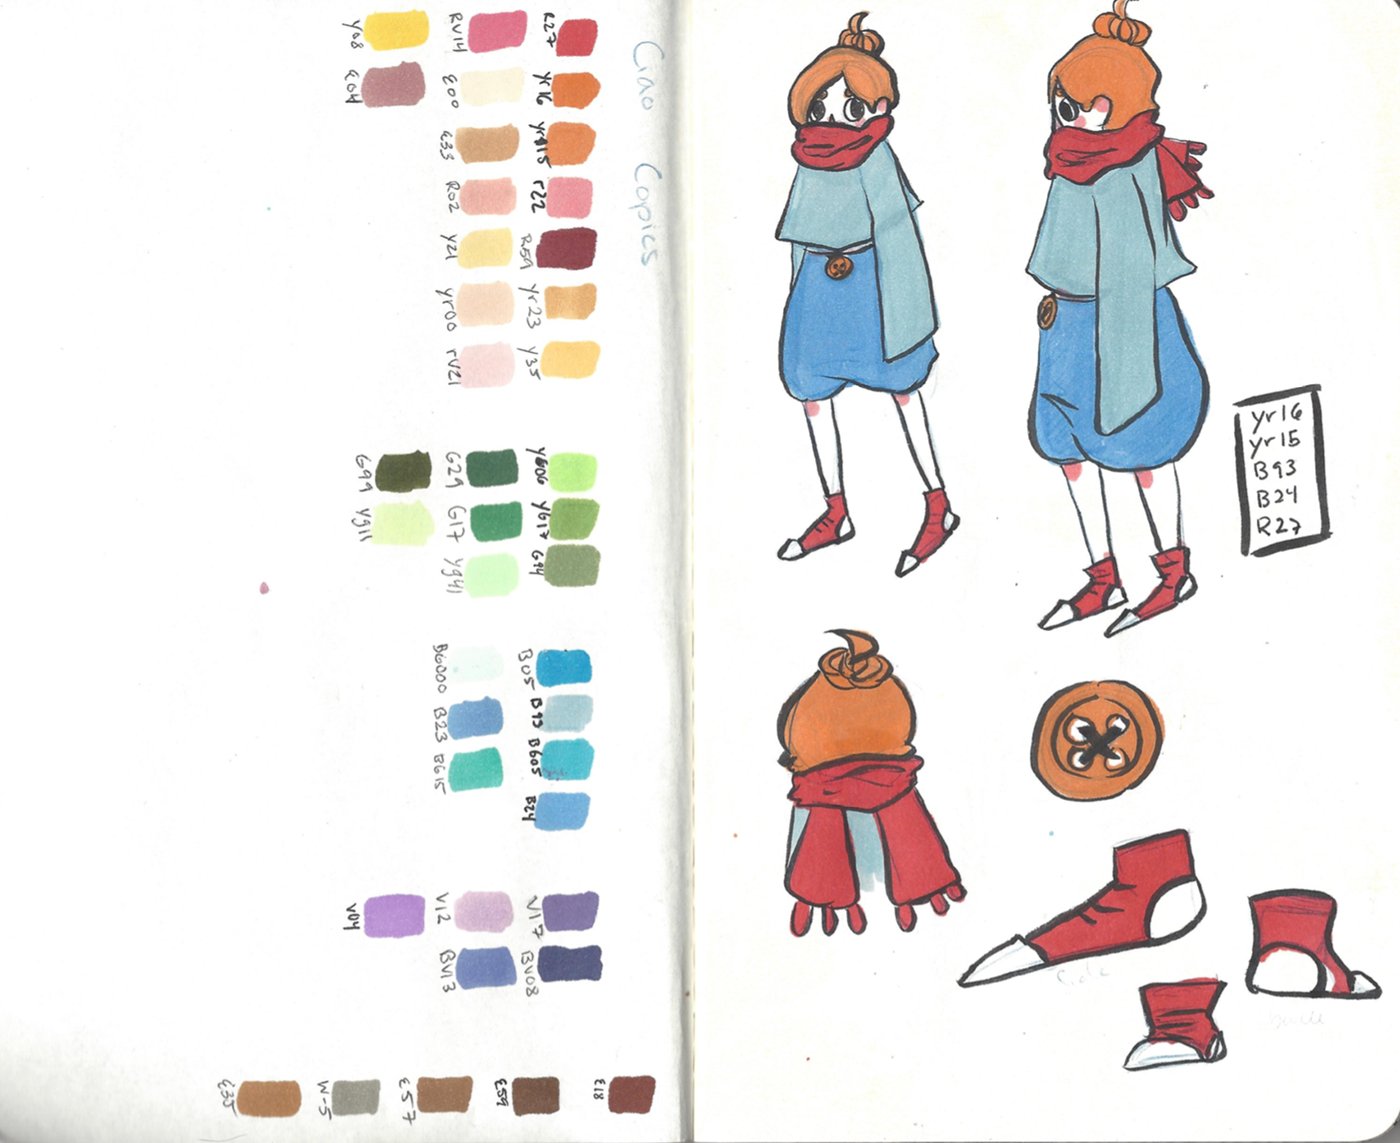 Character Design Courses College : Character design risd on portfolios